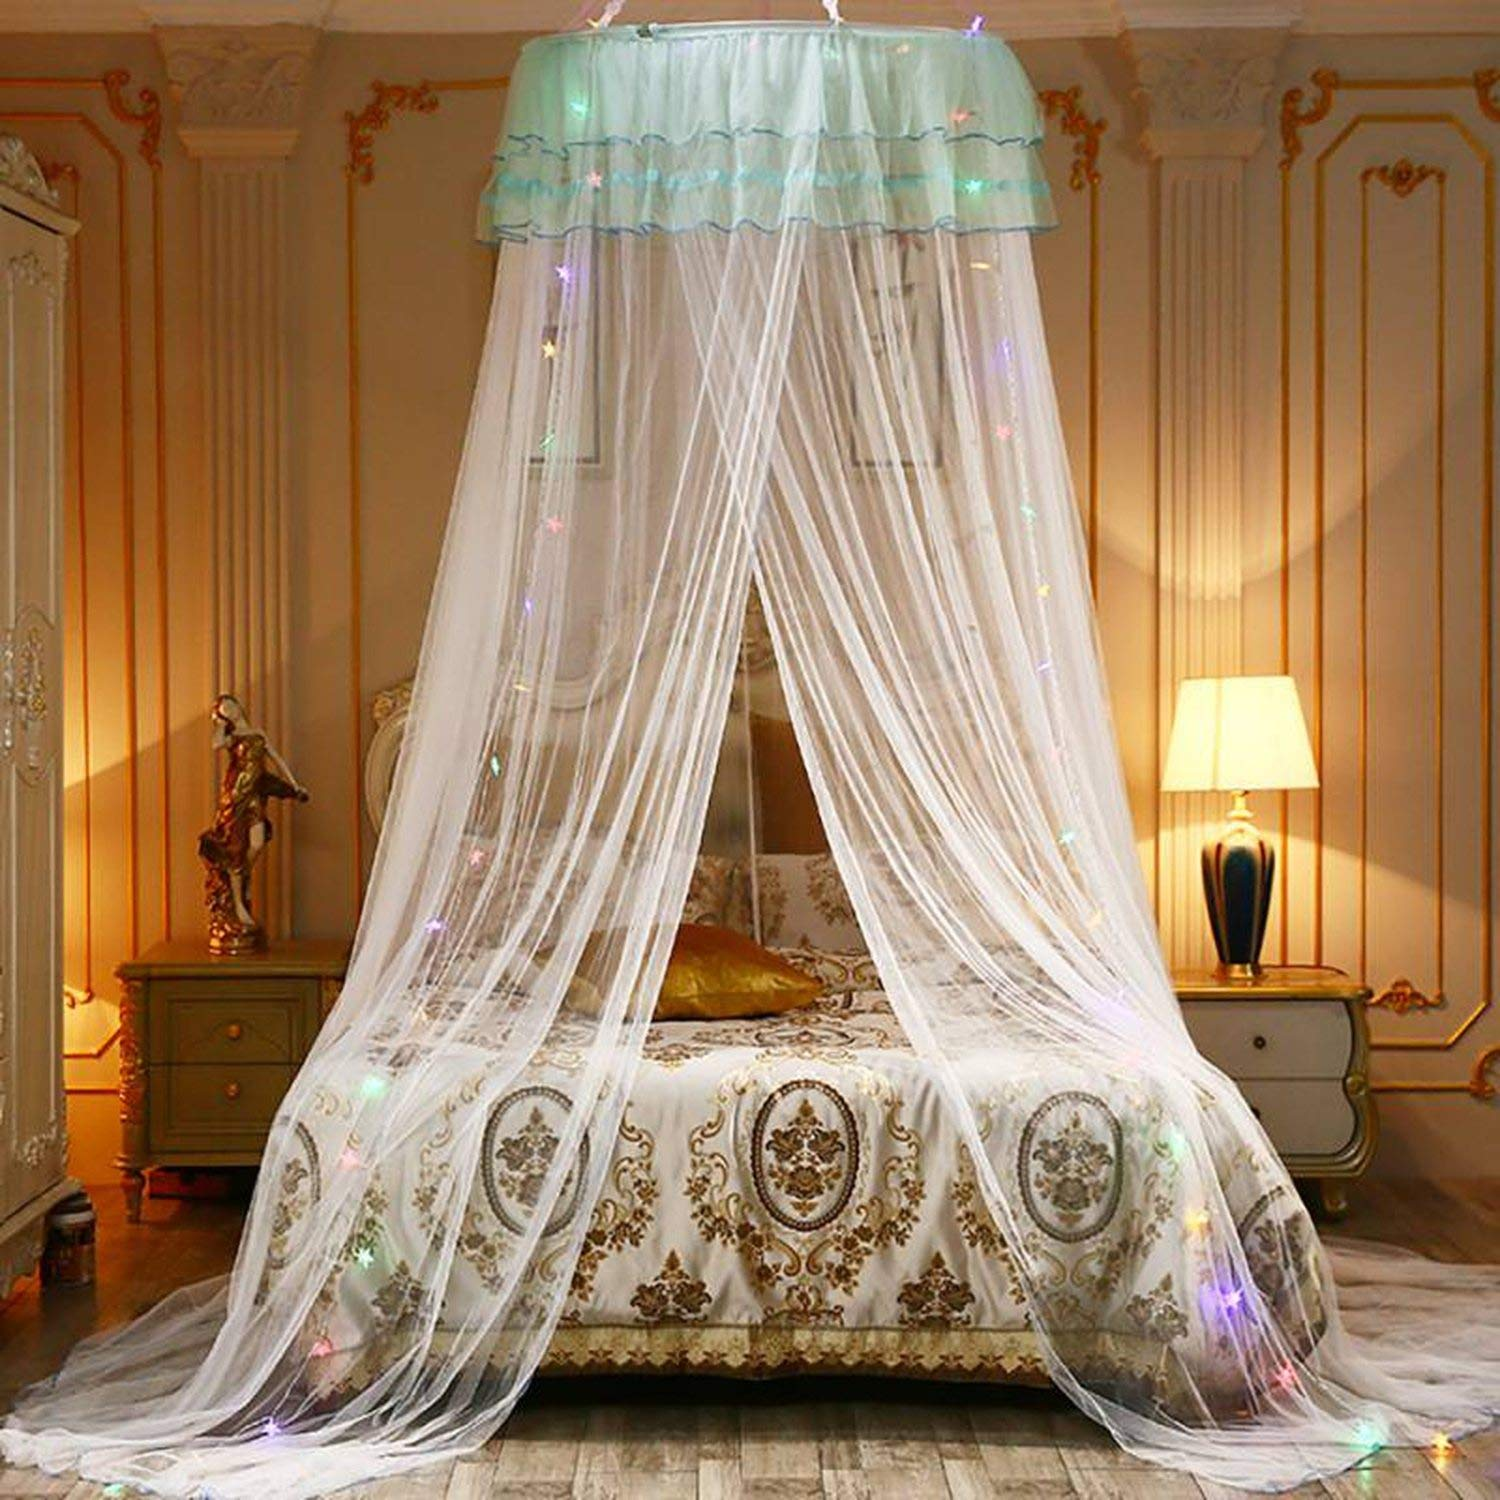 Elegant Canopy Mosquito Net for Double Bed Mosquito Repellent Tent Insect Reject Canopy Bed Curtain Bed Tent,3 by Try My Best Mosquito Net (Image #6)